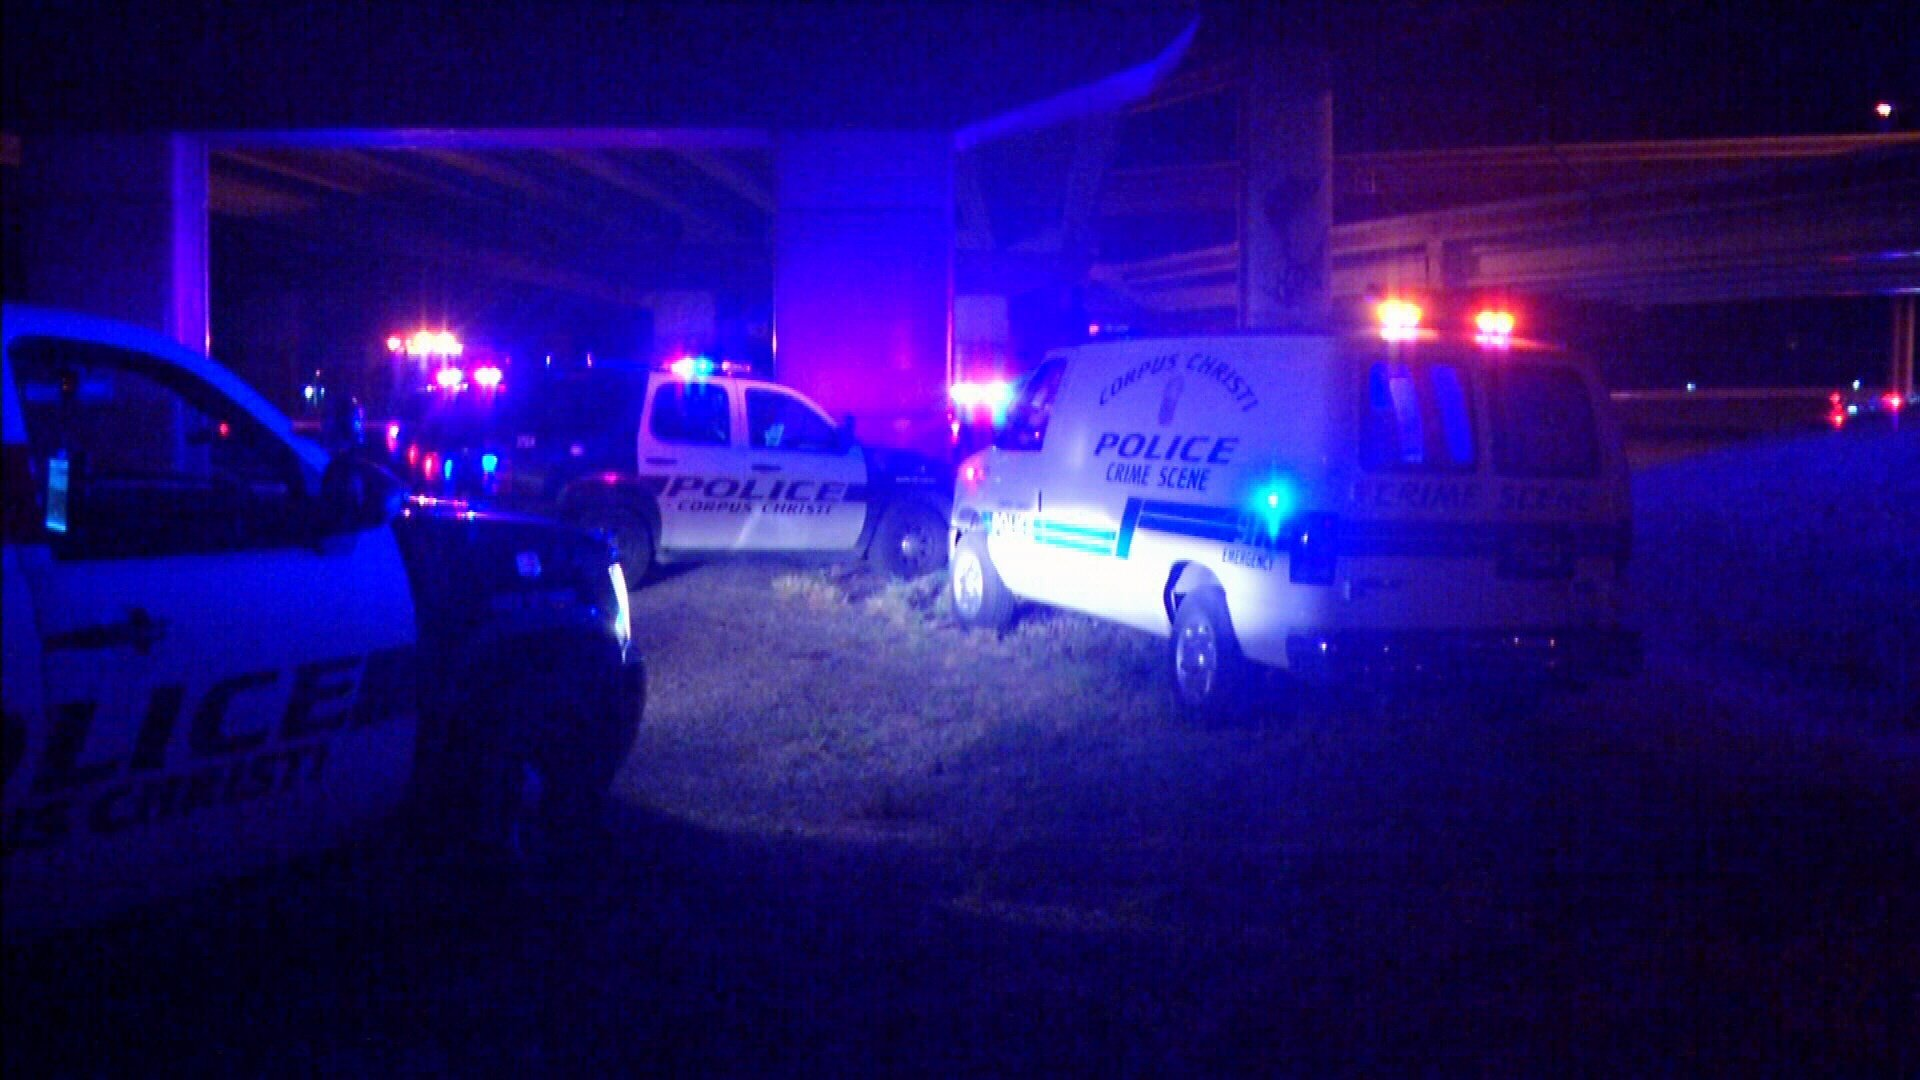 Two people were assaulted and one was shot after they allegedly stole a car.